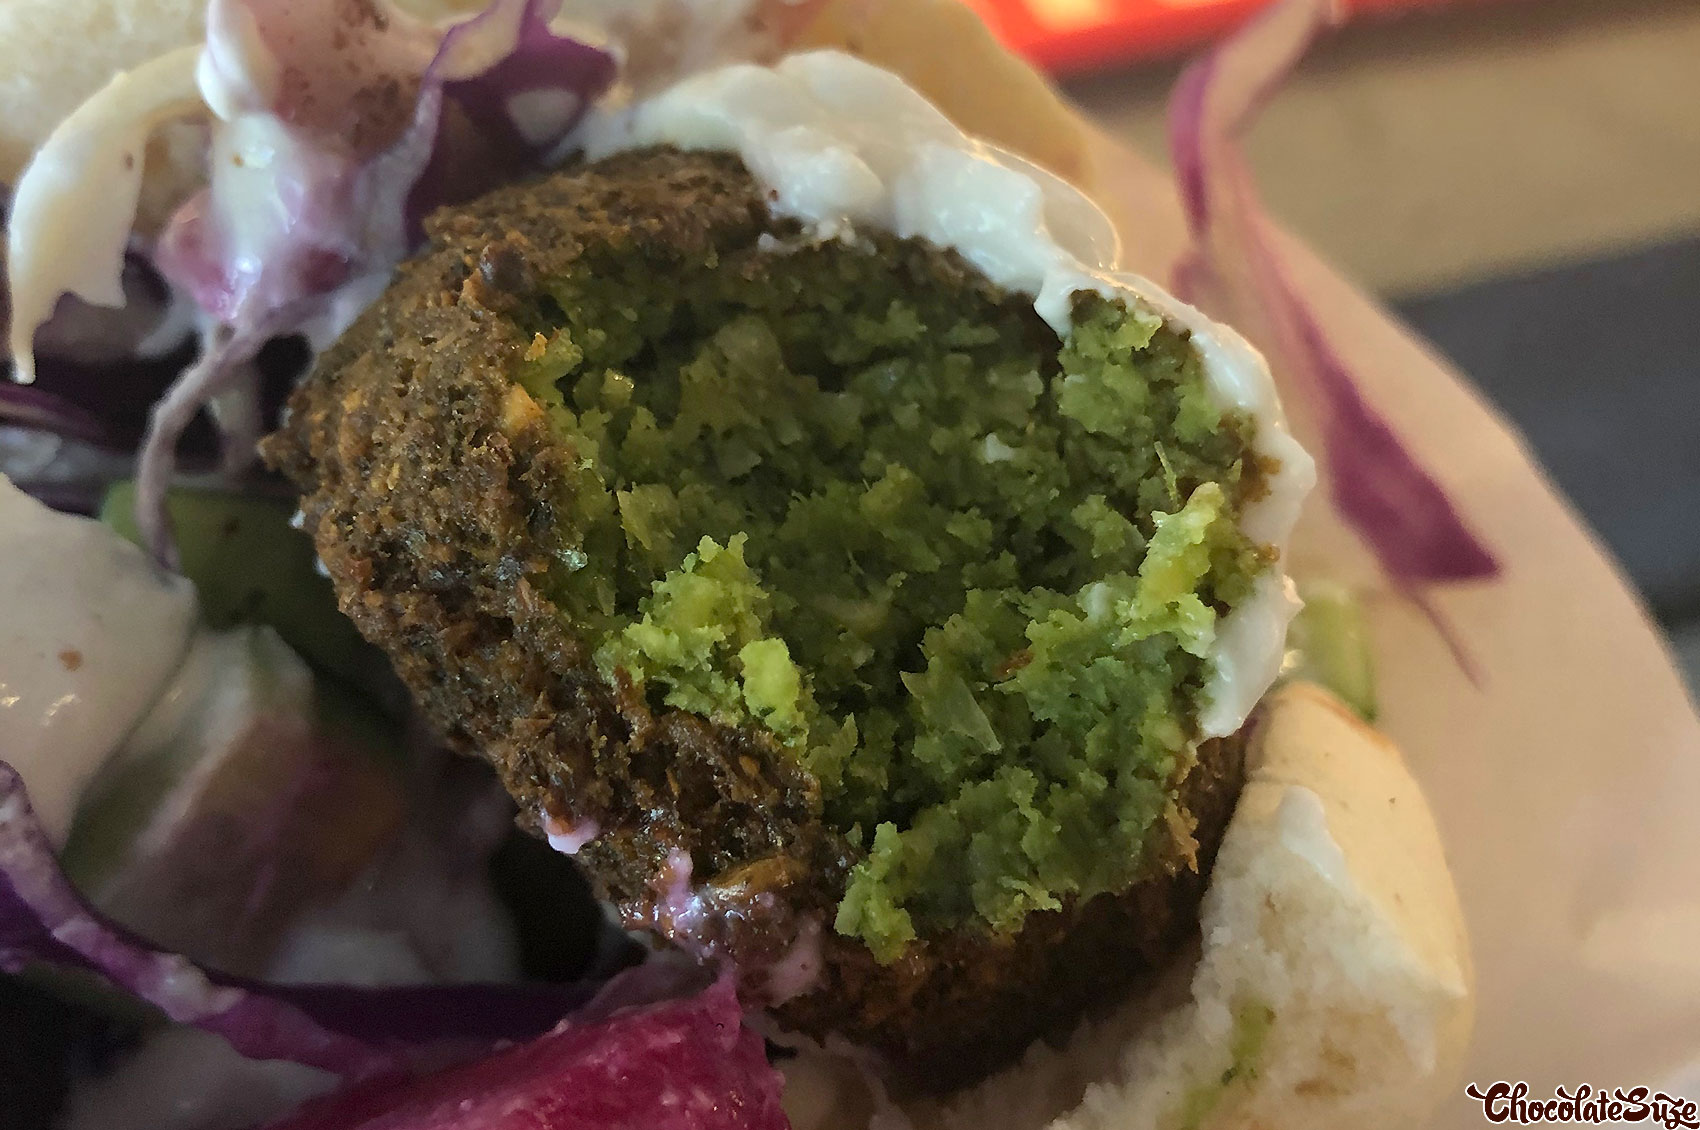 Falafel pita at Shwarmama, Surry Hills